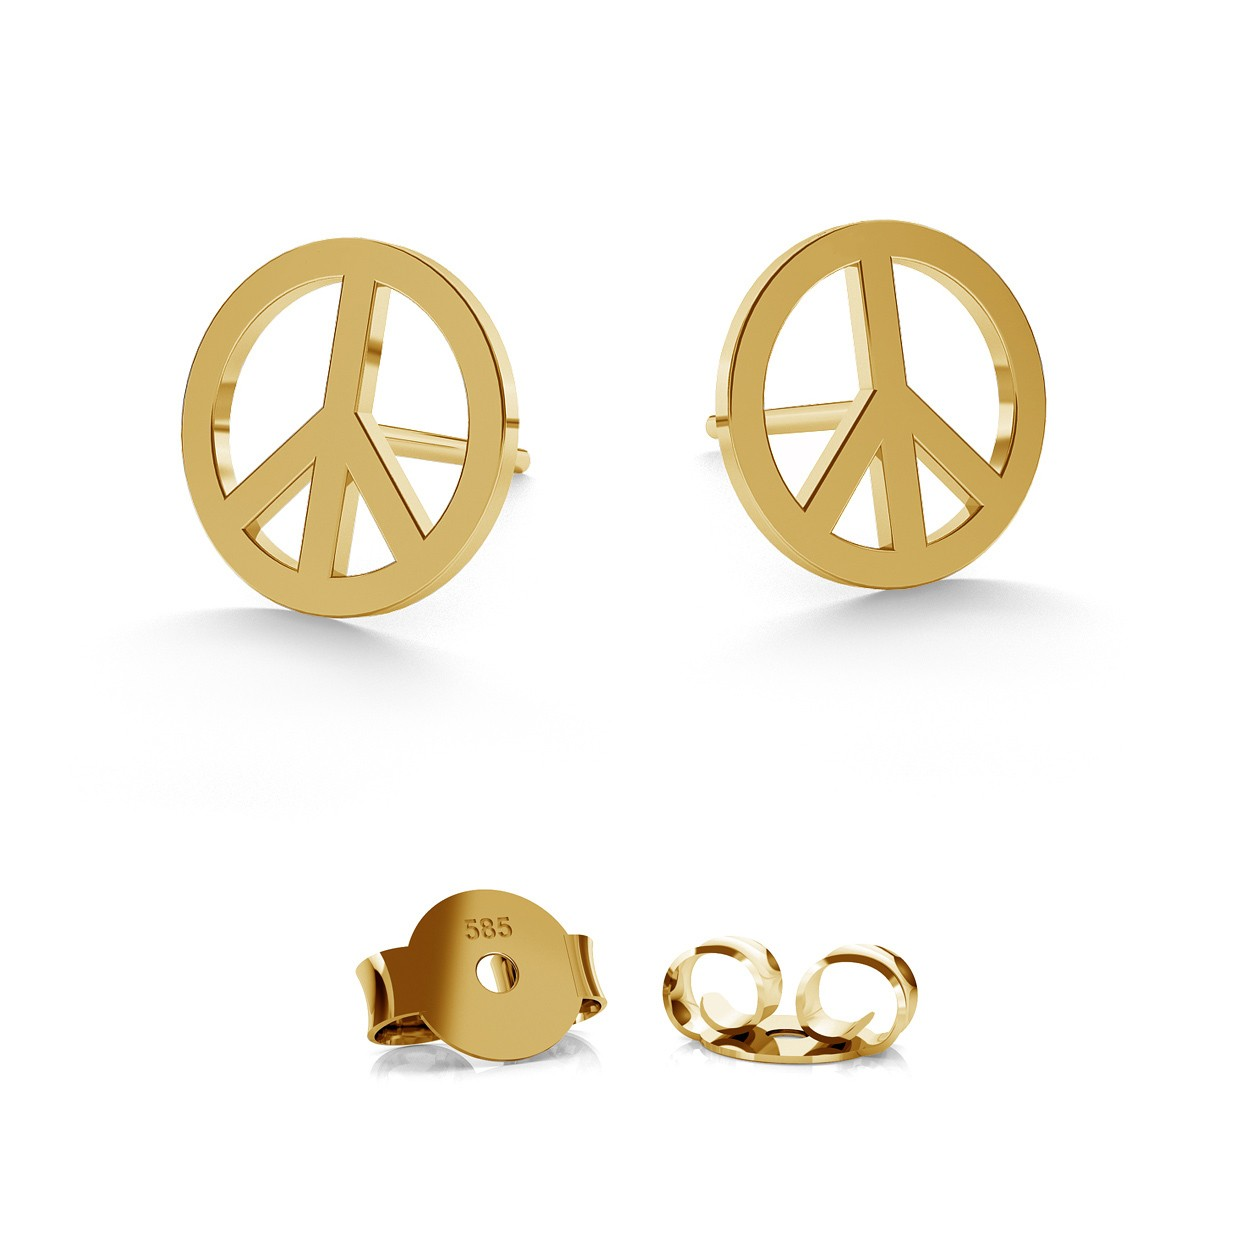 14K GOLD PEACE SYMBOL EARRING, MODEL 590